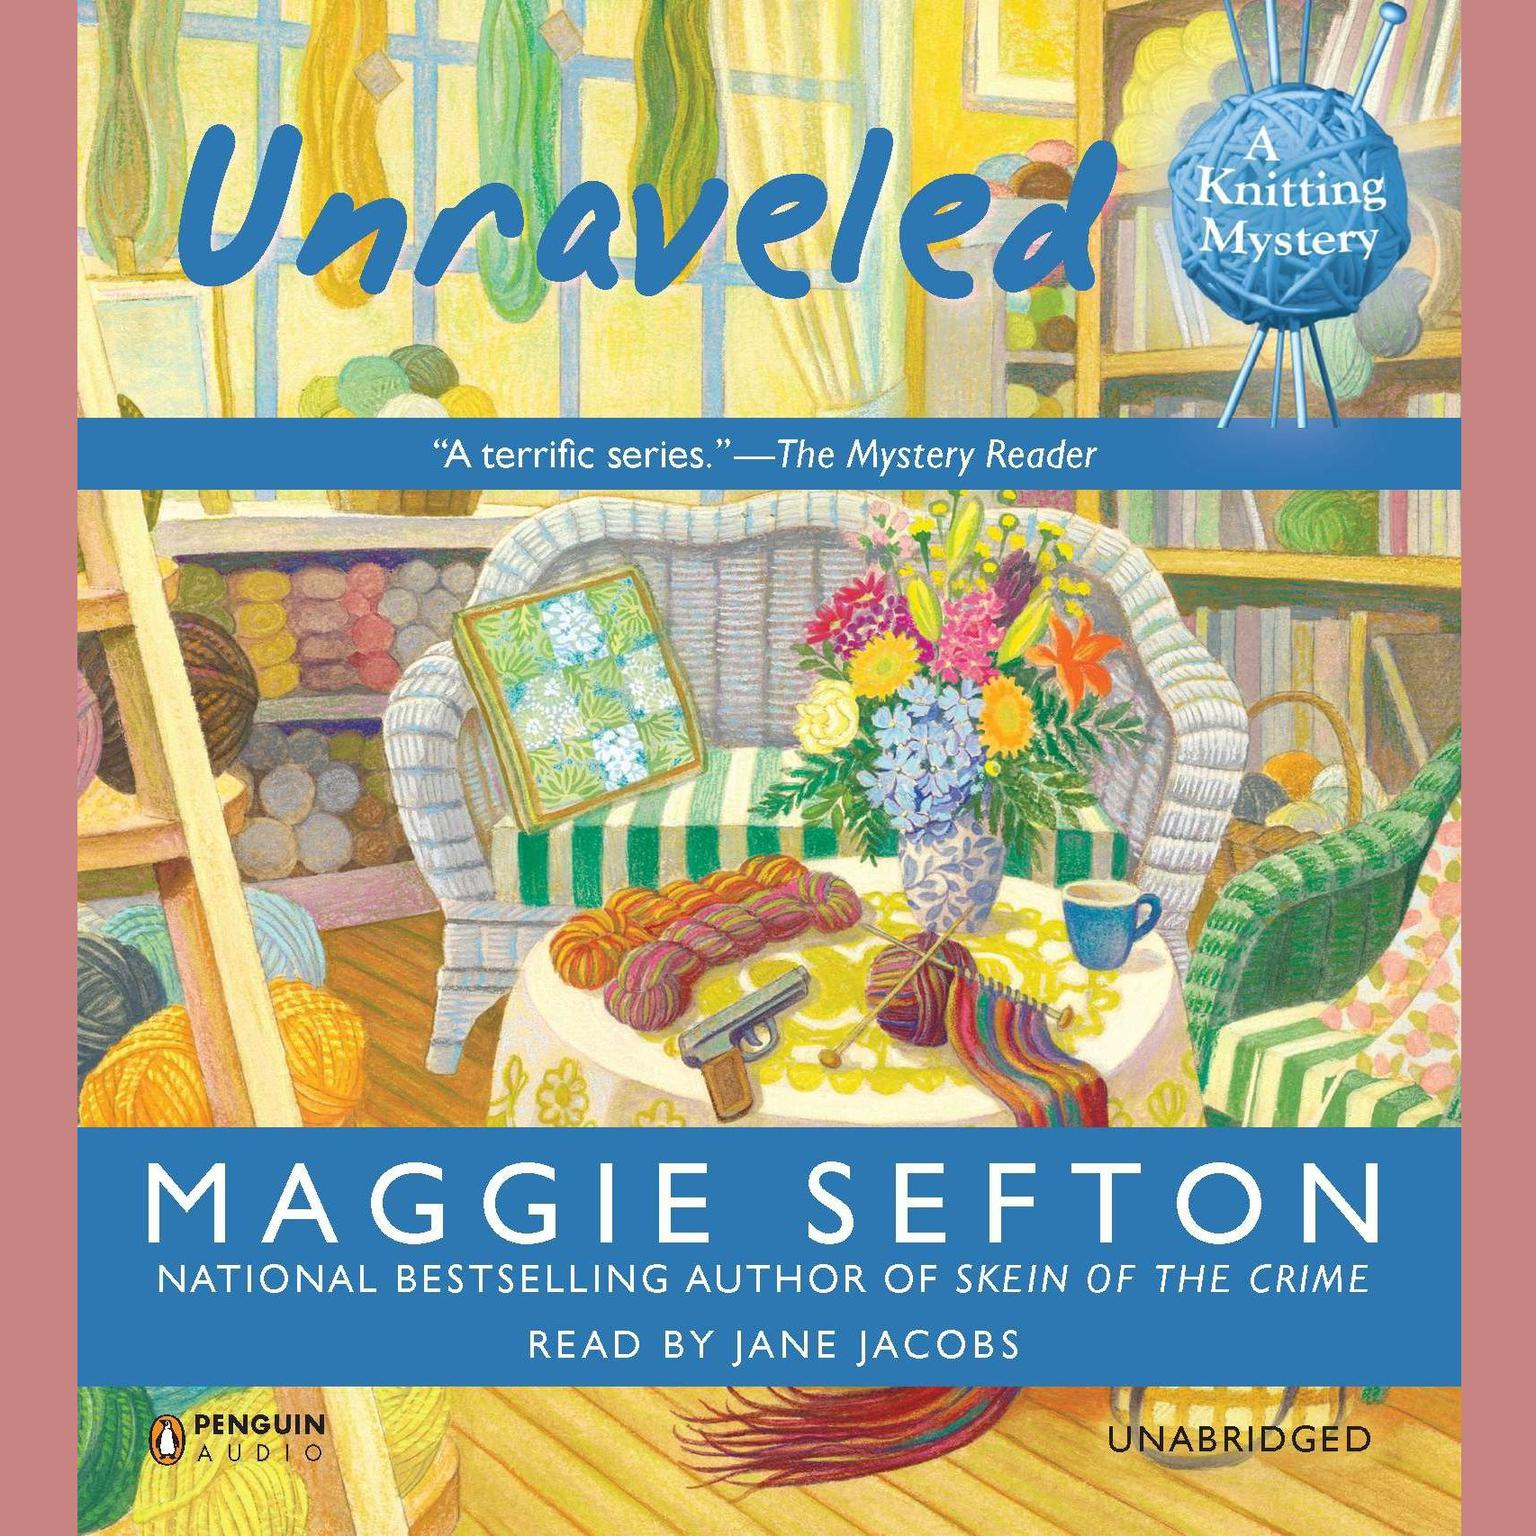 Download Unraveled Audiobook by Maggie Sefton read by Jane Jacobs for just USD5.95